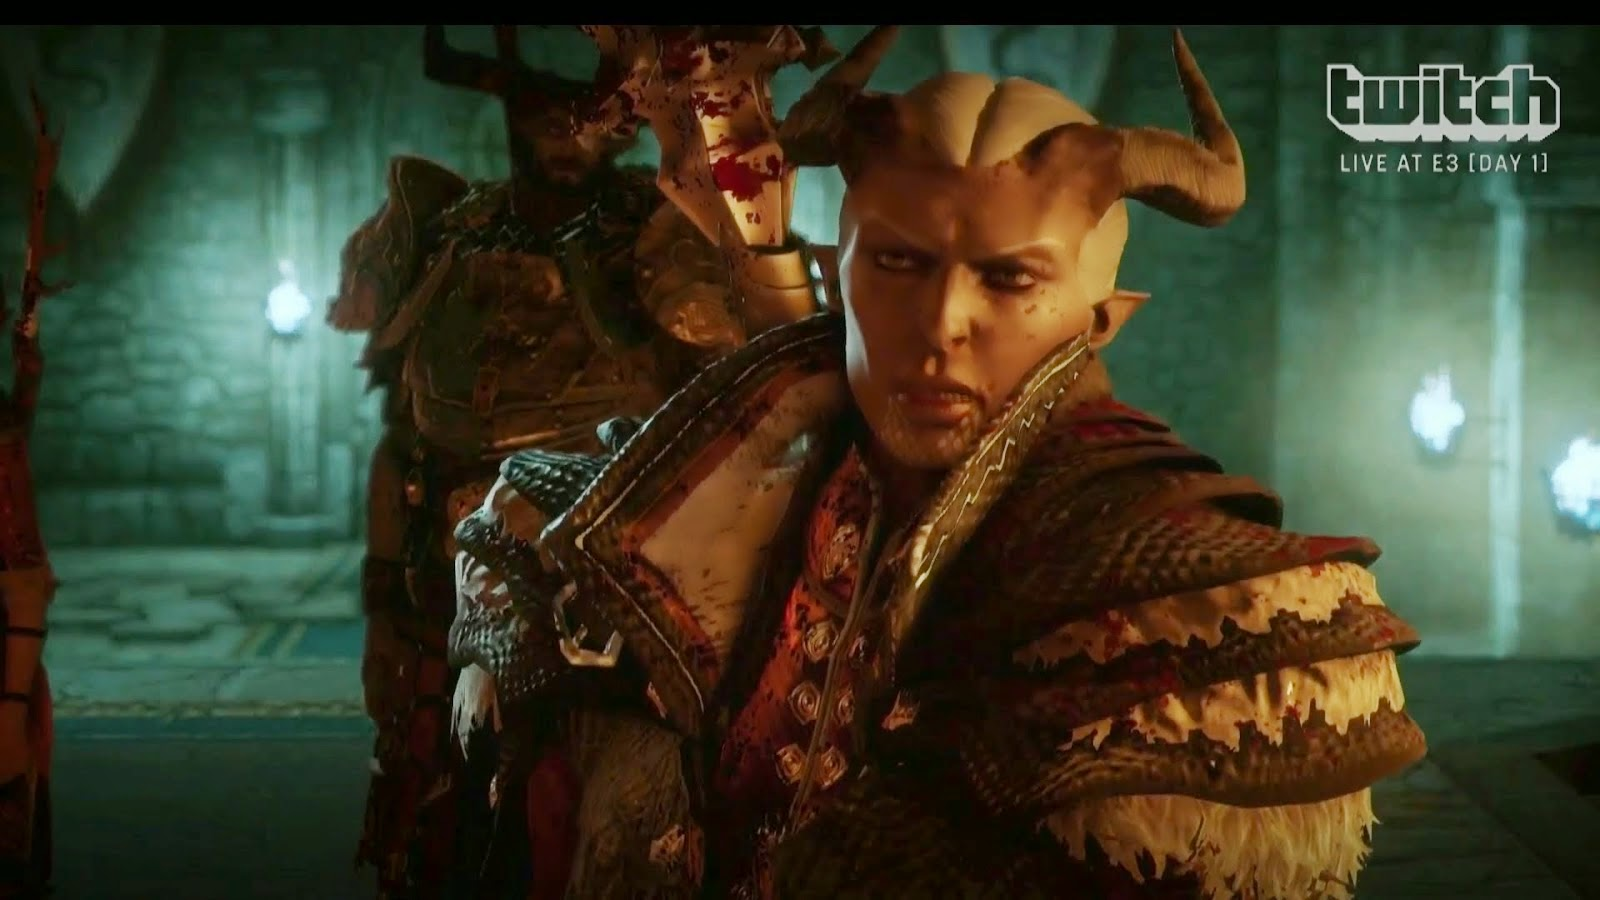 Dragon Age 3: Inquisition PC | News from PCGamesN.com - Page 3